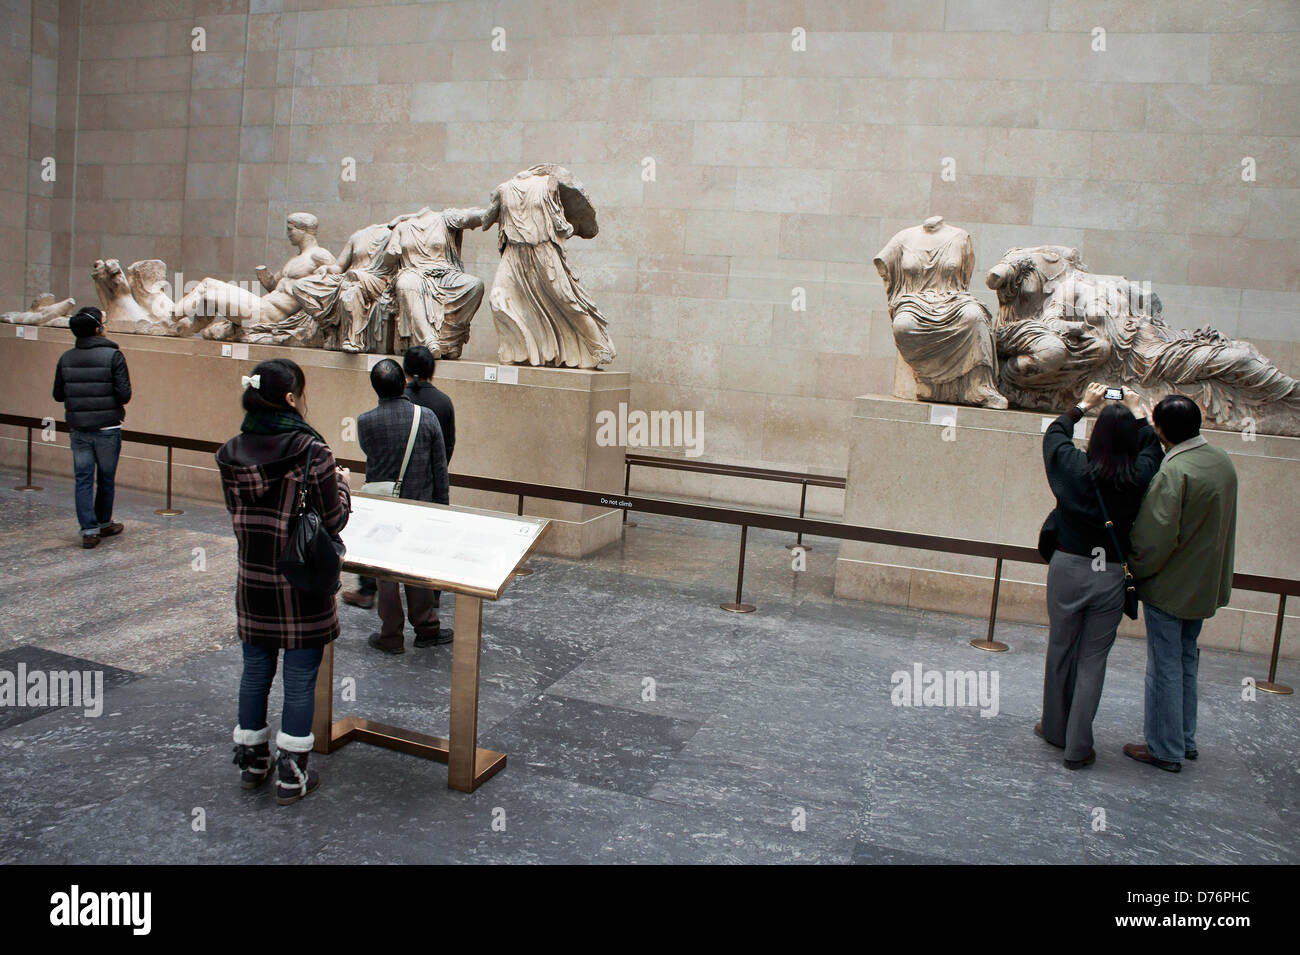 Elgin Marbles. British Museum, London. Sculpture marble figures from east pediment of the Parthenon - Stock Image